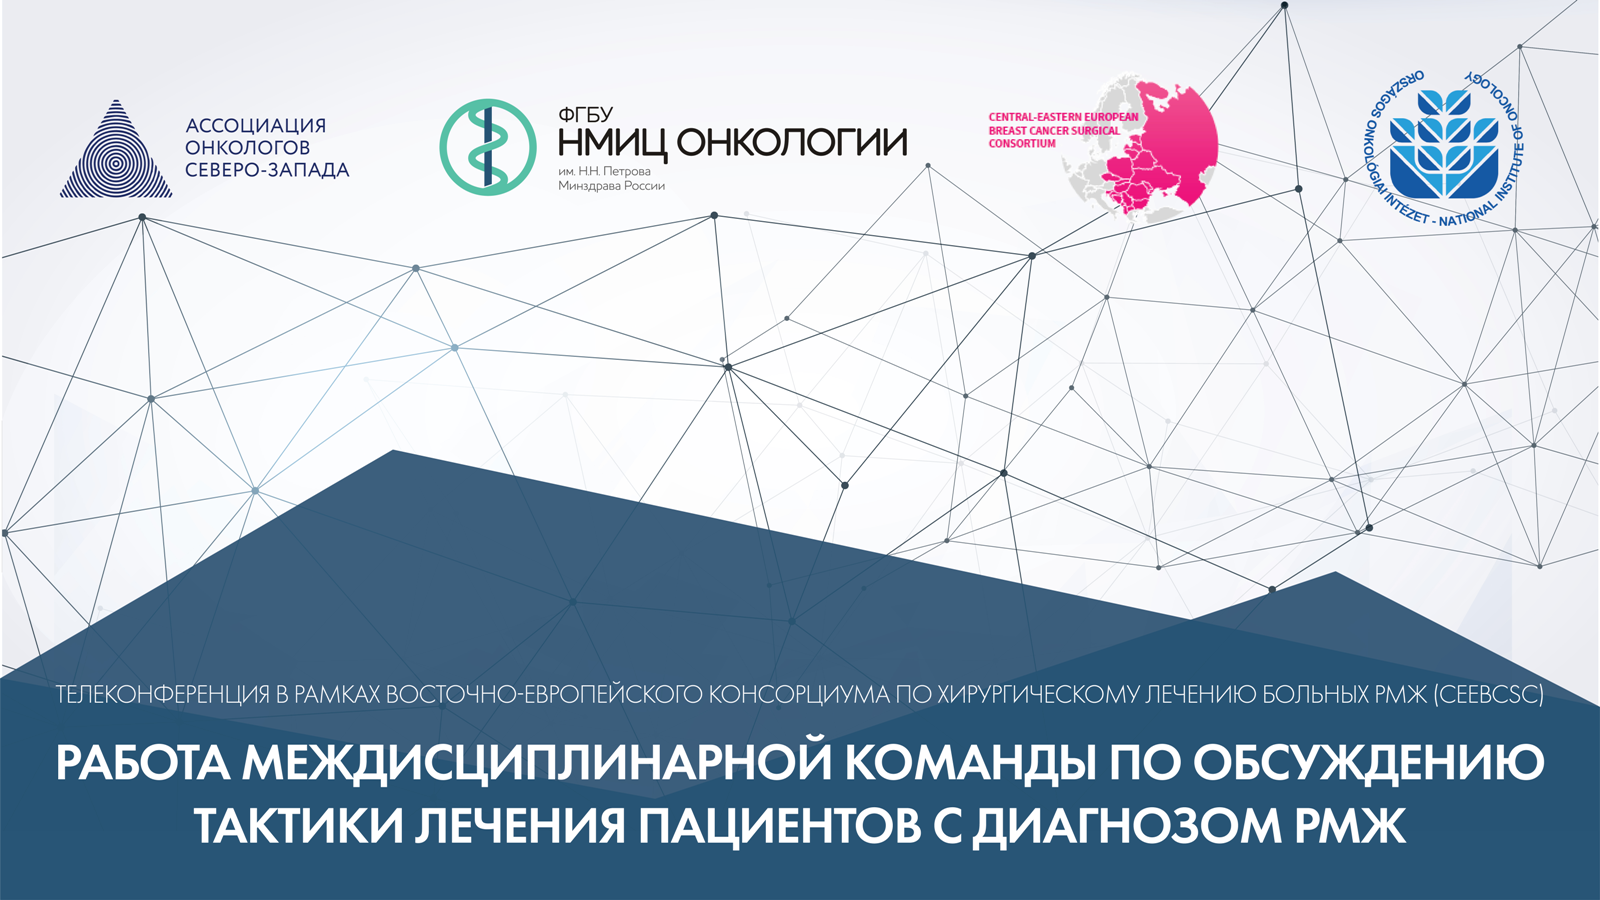 Teleconference within the Central-Eastern European Breast Cancer Surgical Consortium (CEEBCSС) «Multidisciplinary team: strategies and tactics in the treatment of breast cancer patients»